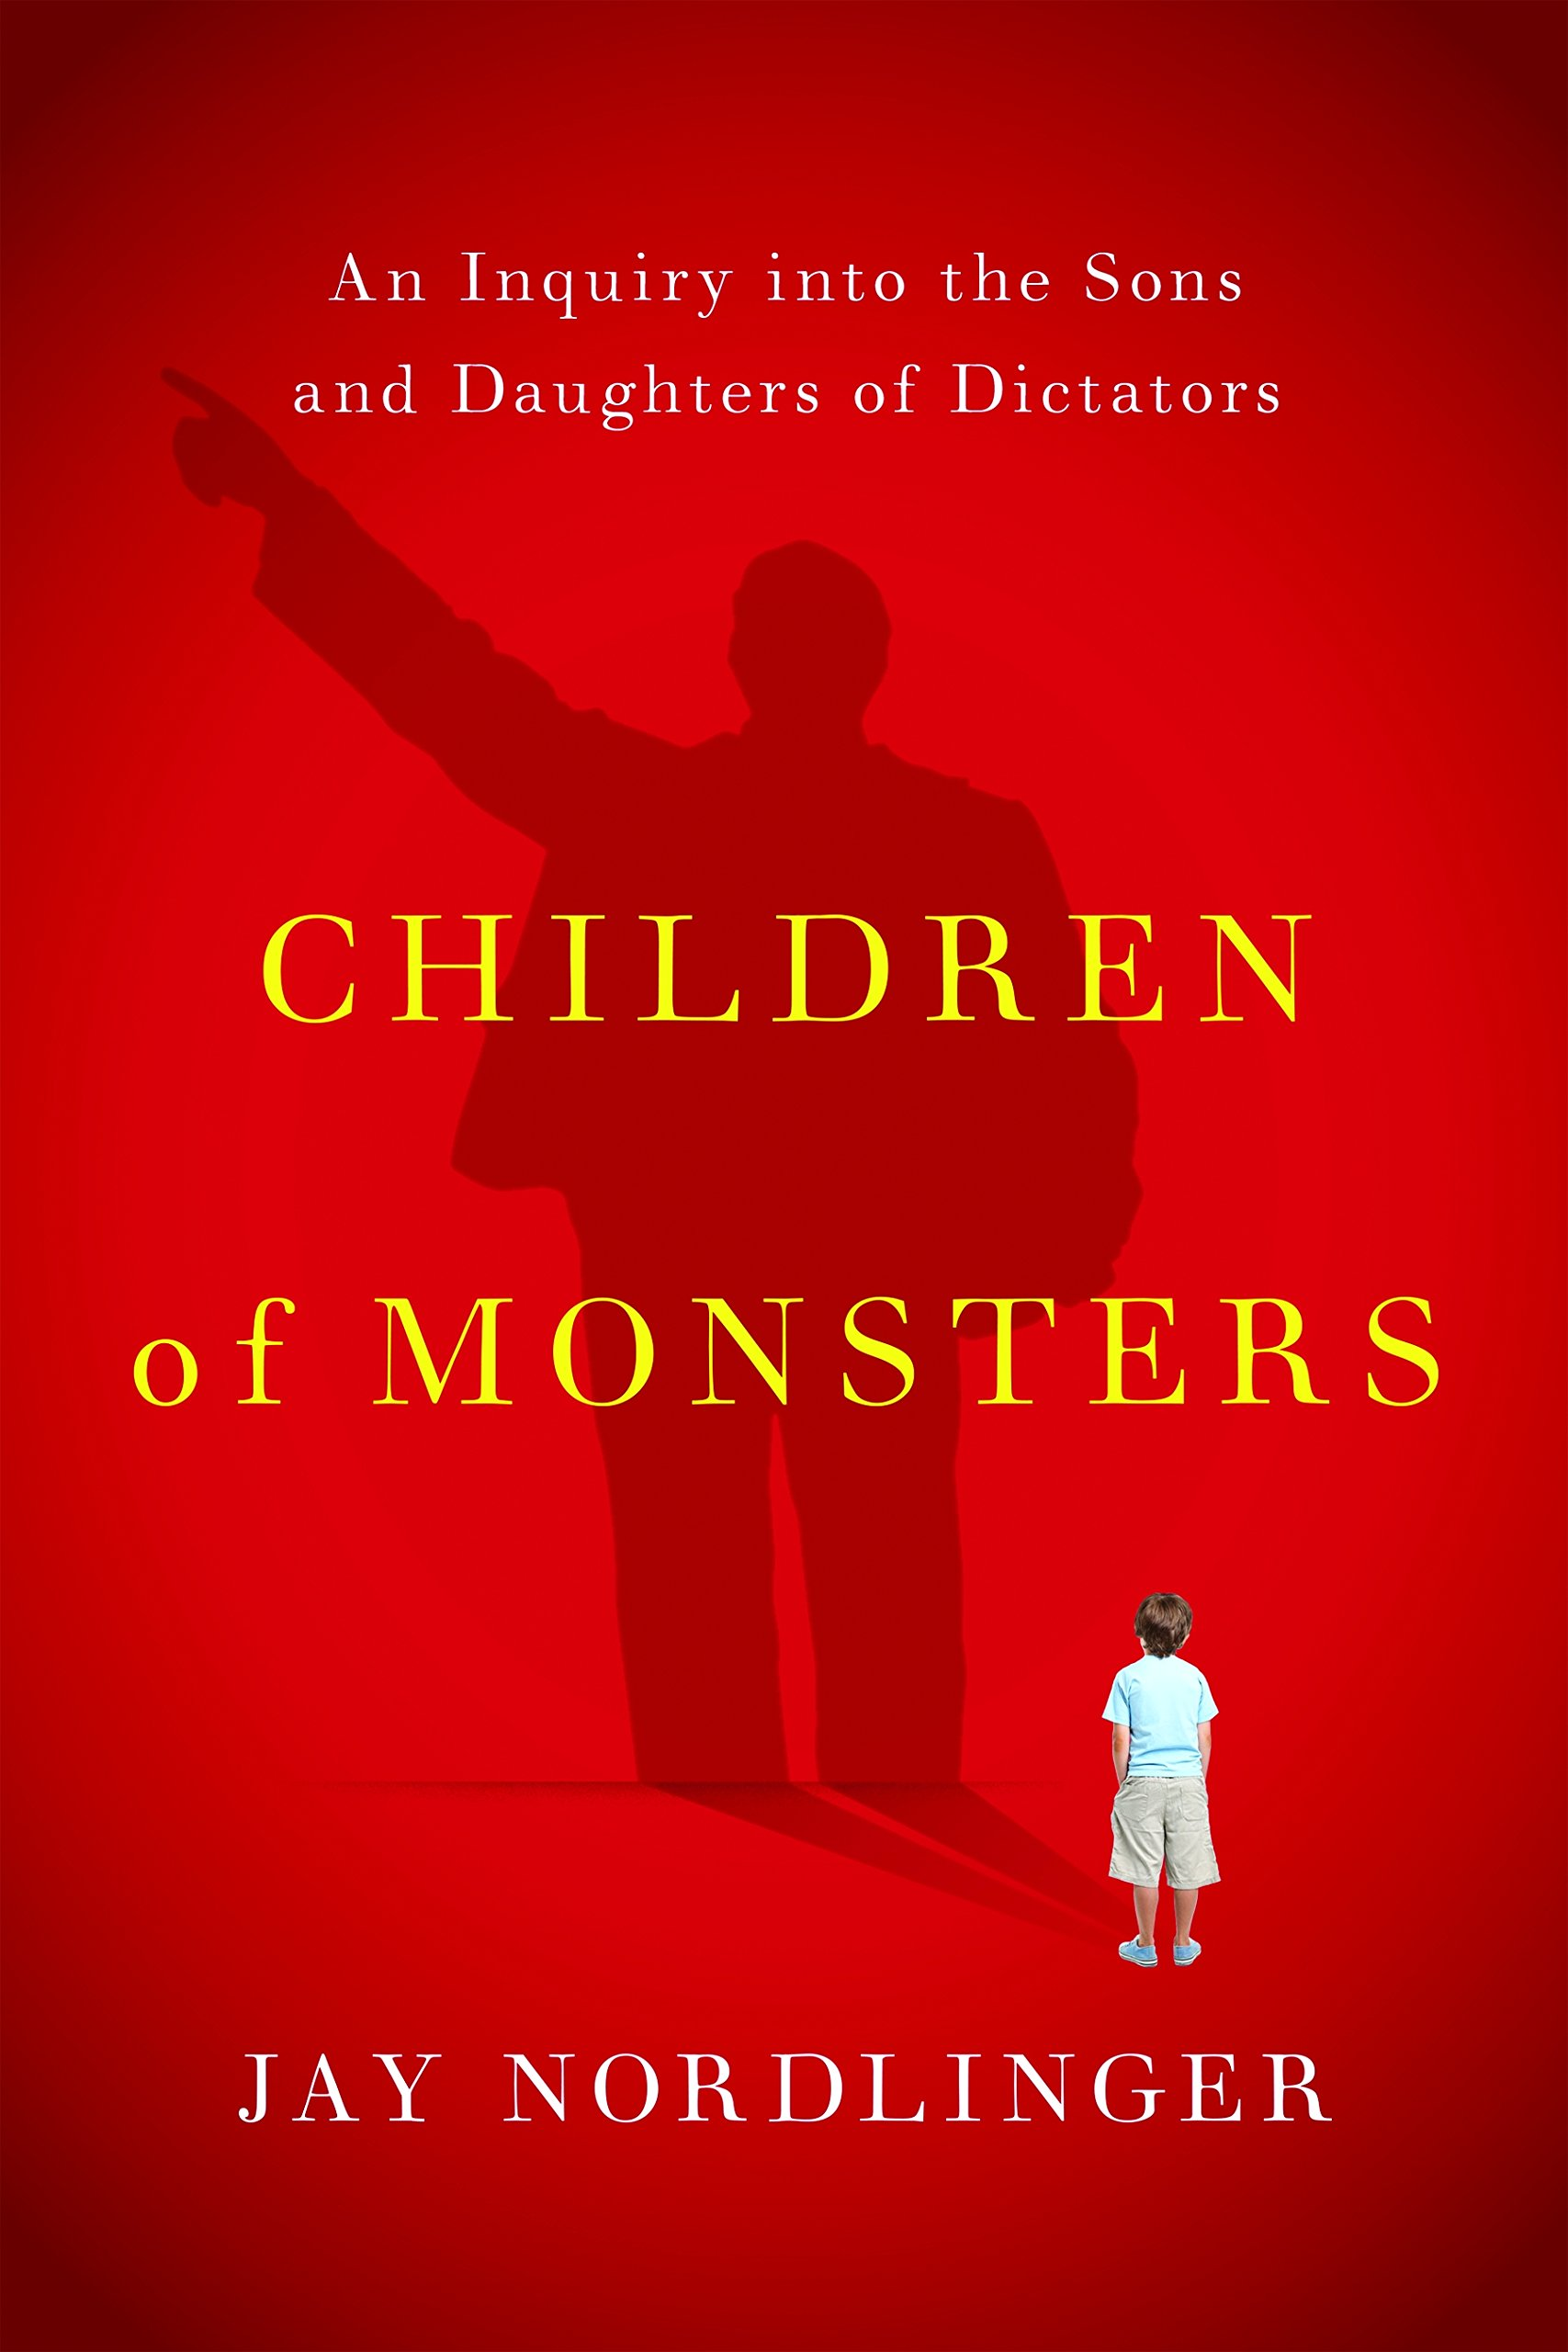 Children Of Monsters: An Inquiry Into The Sons And Daughters Of Dictators:  Jay Nordlinger: 9781594038150: Amazon.com: Books